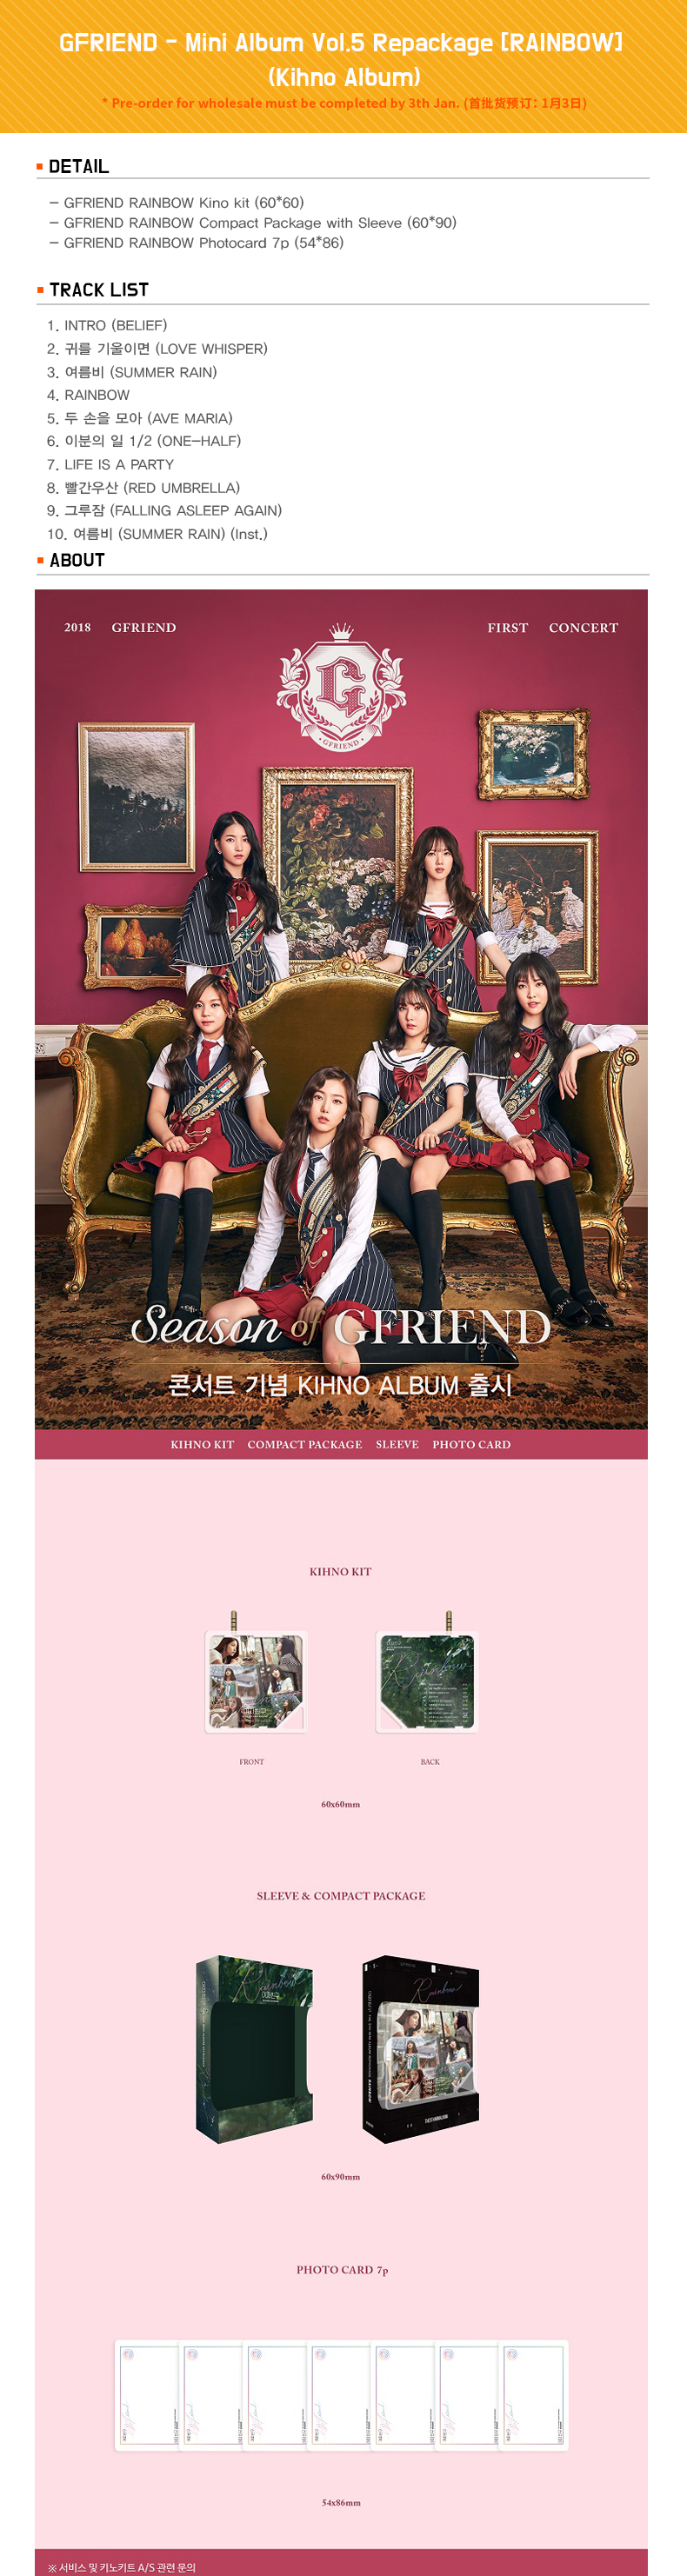 GFRIEND - Mini Album Vol.5 Repackage [RAINBOW] (Kihno Album)